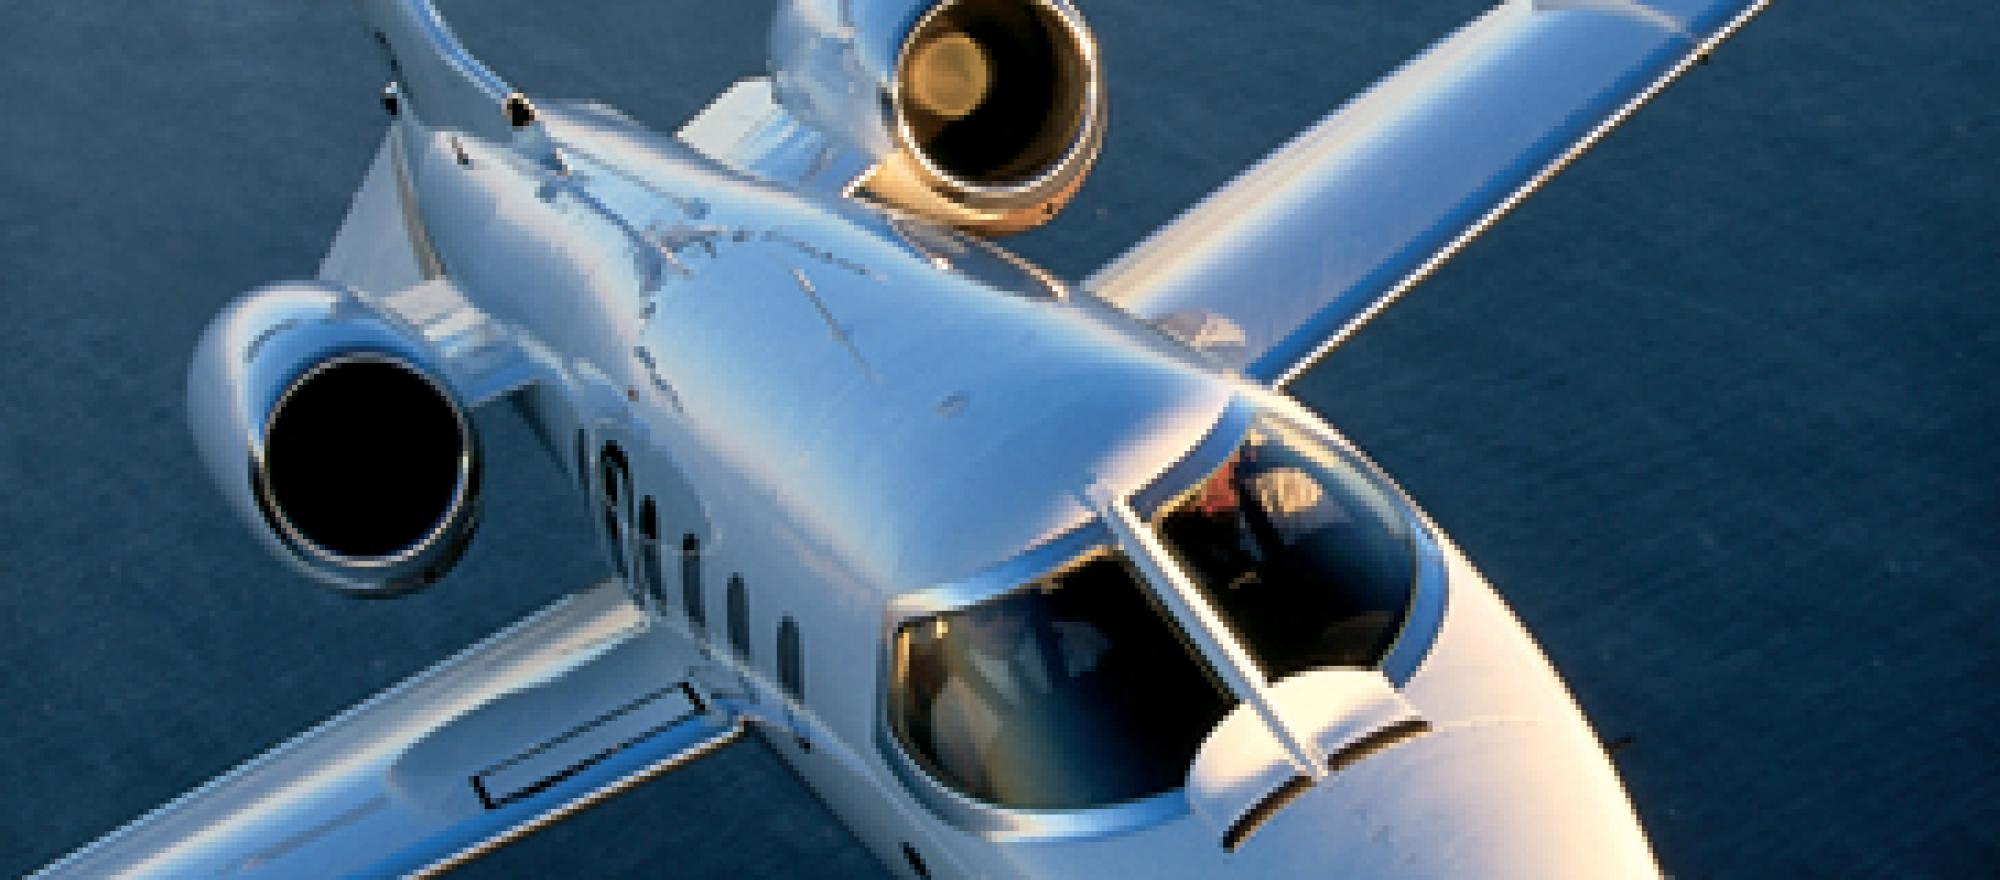 The Learjet 31 honored both pocket-rocket legacy and the Spartan cabin spir